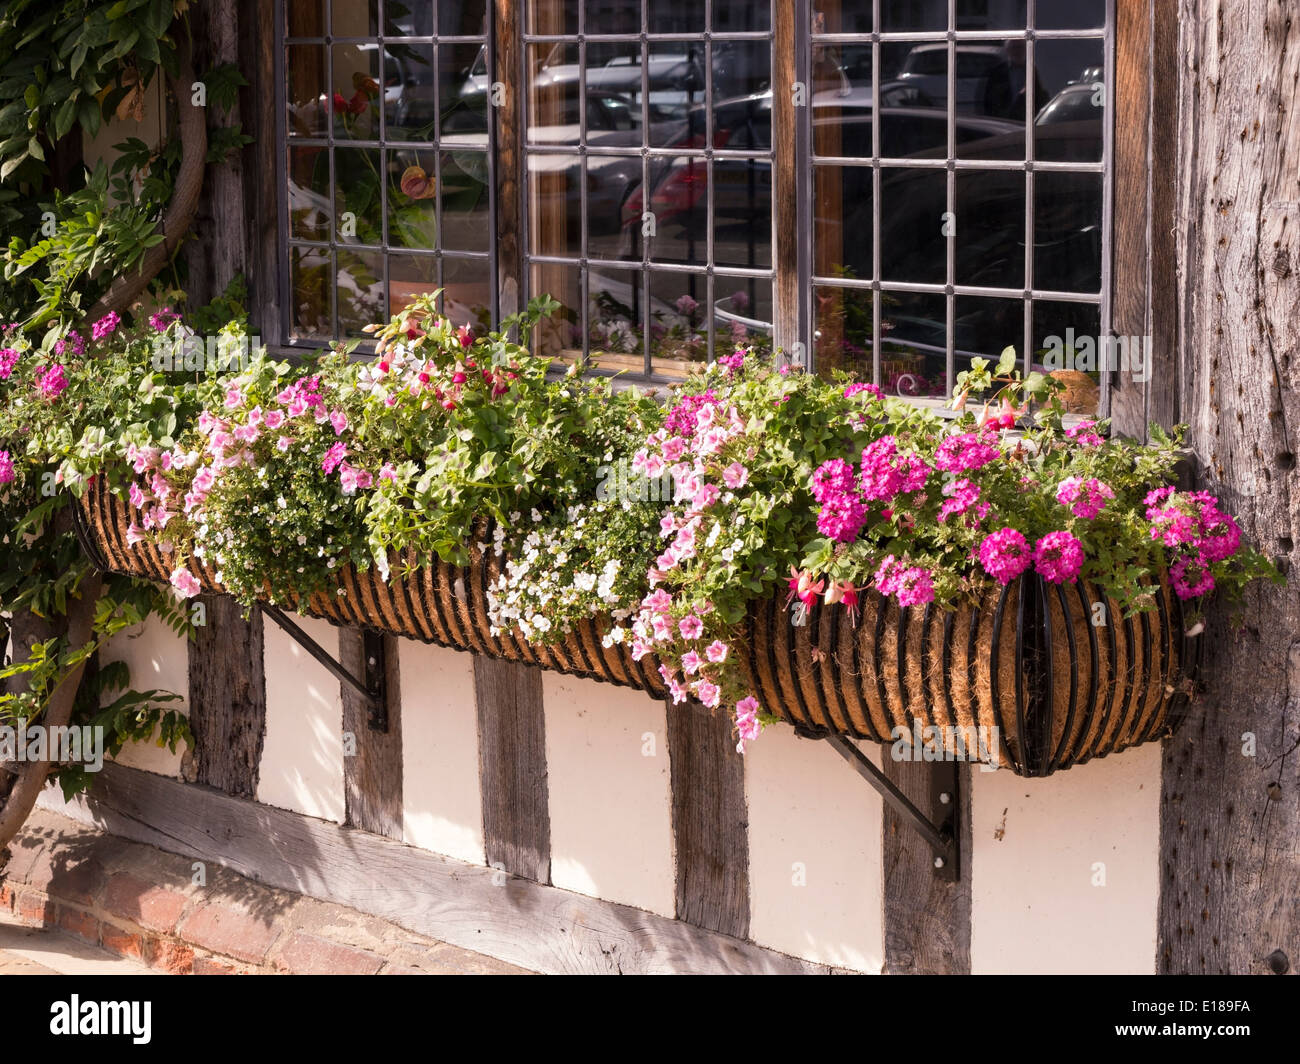 Leaded glass windows and window box with flowers on old oak framed house, Lavenham, Suffolk, England, UK - Stock Image